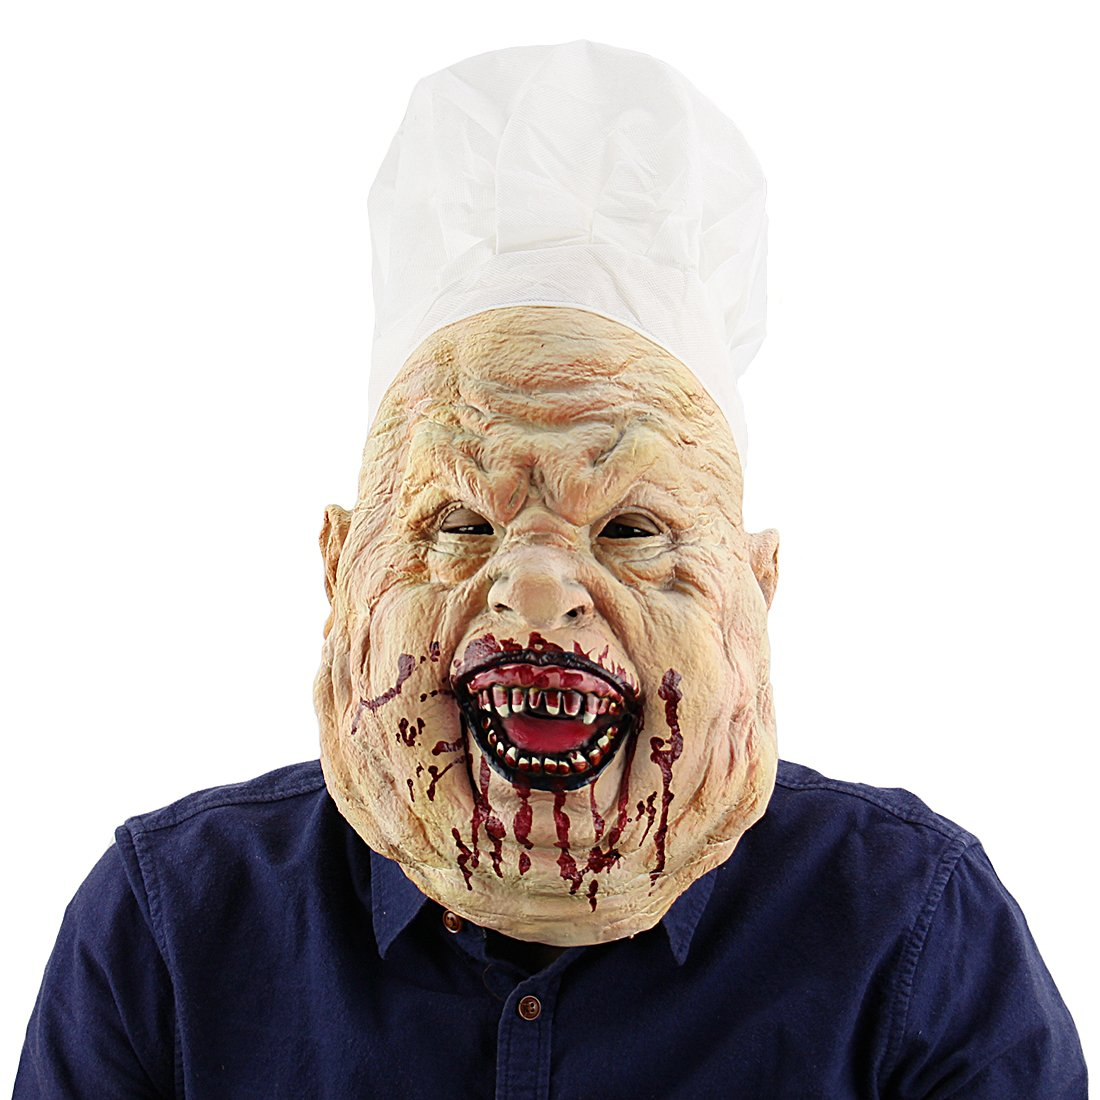 Halloween Party Terror Chef Scary Clown Death Masks Props Bloody Butcher Mask Novelty Latex Rubber Creepy Head Mask Costume Decorations